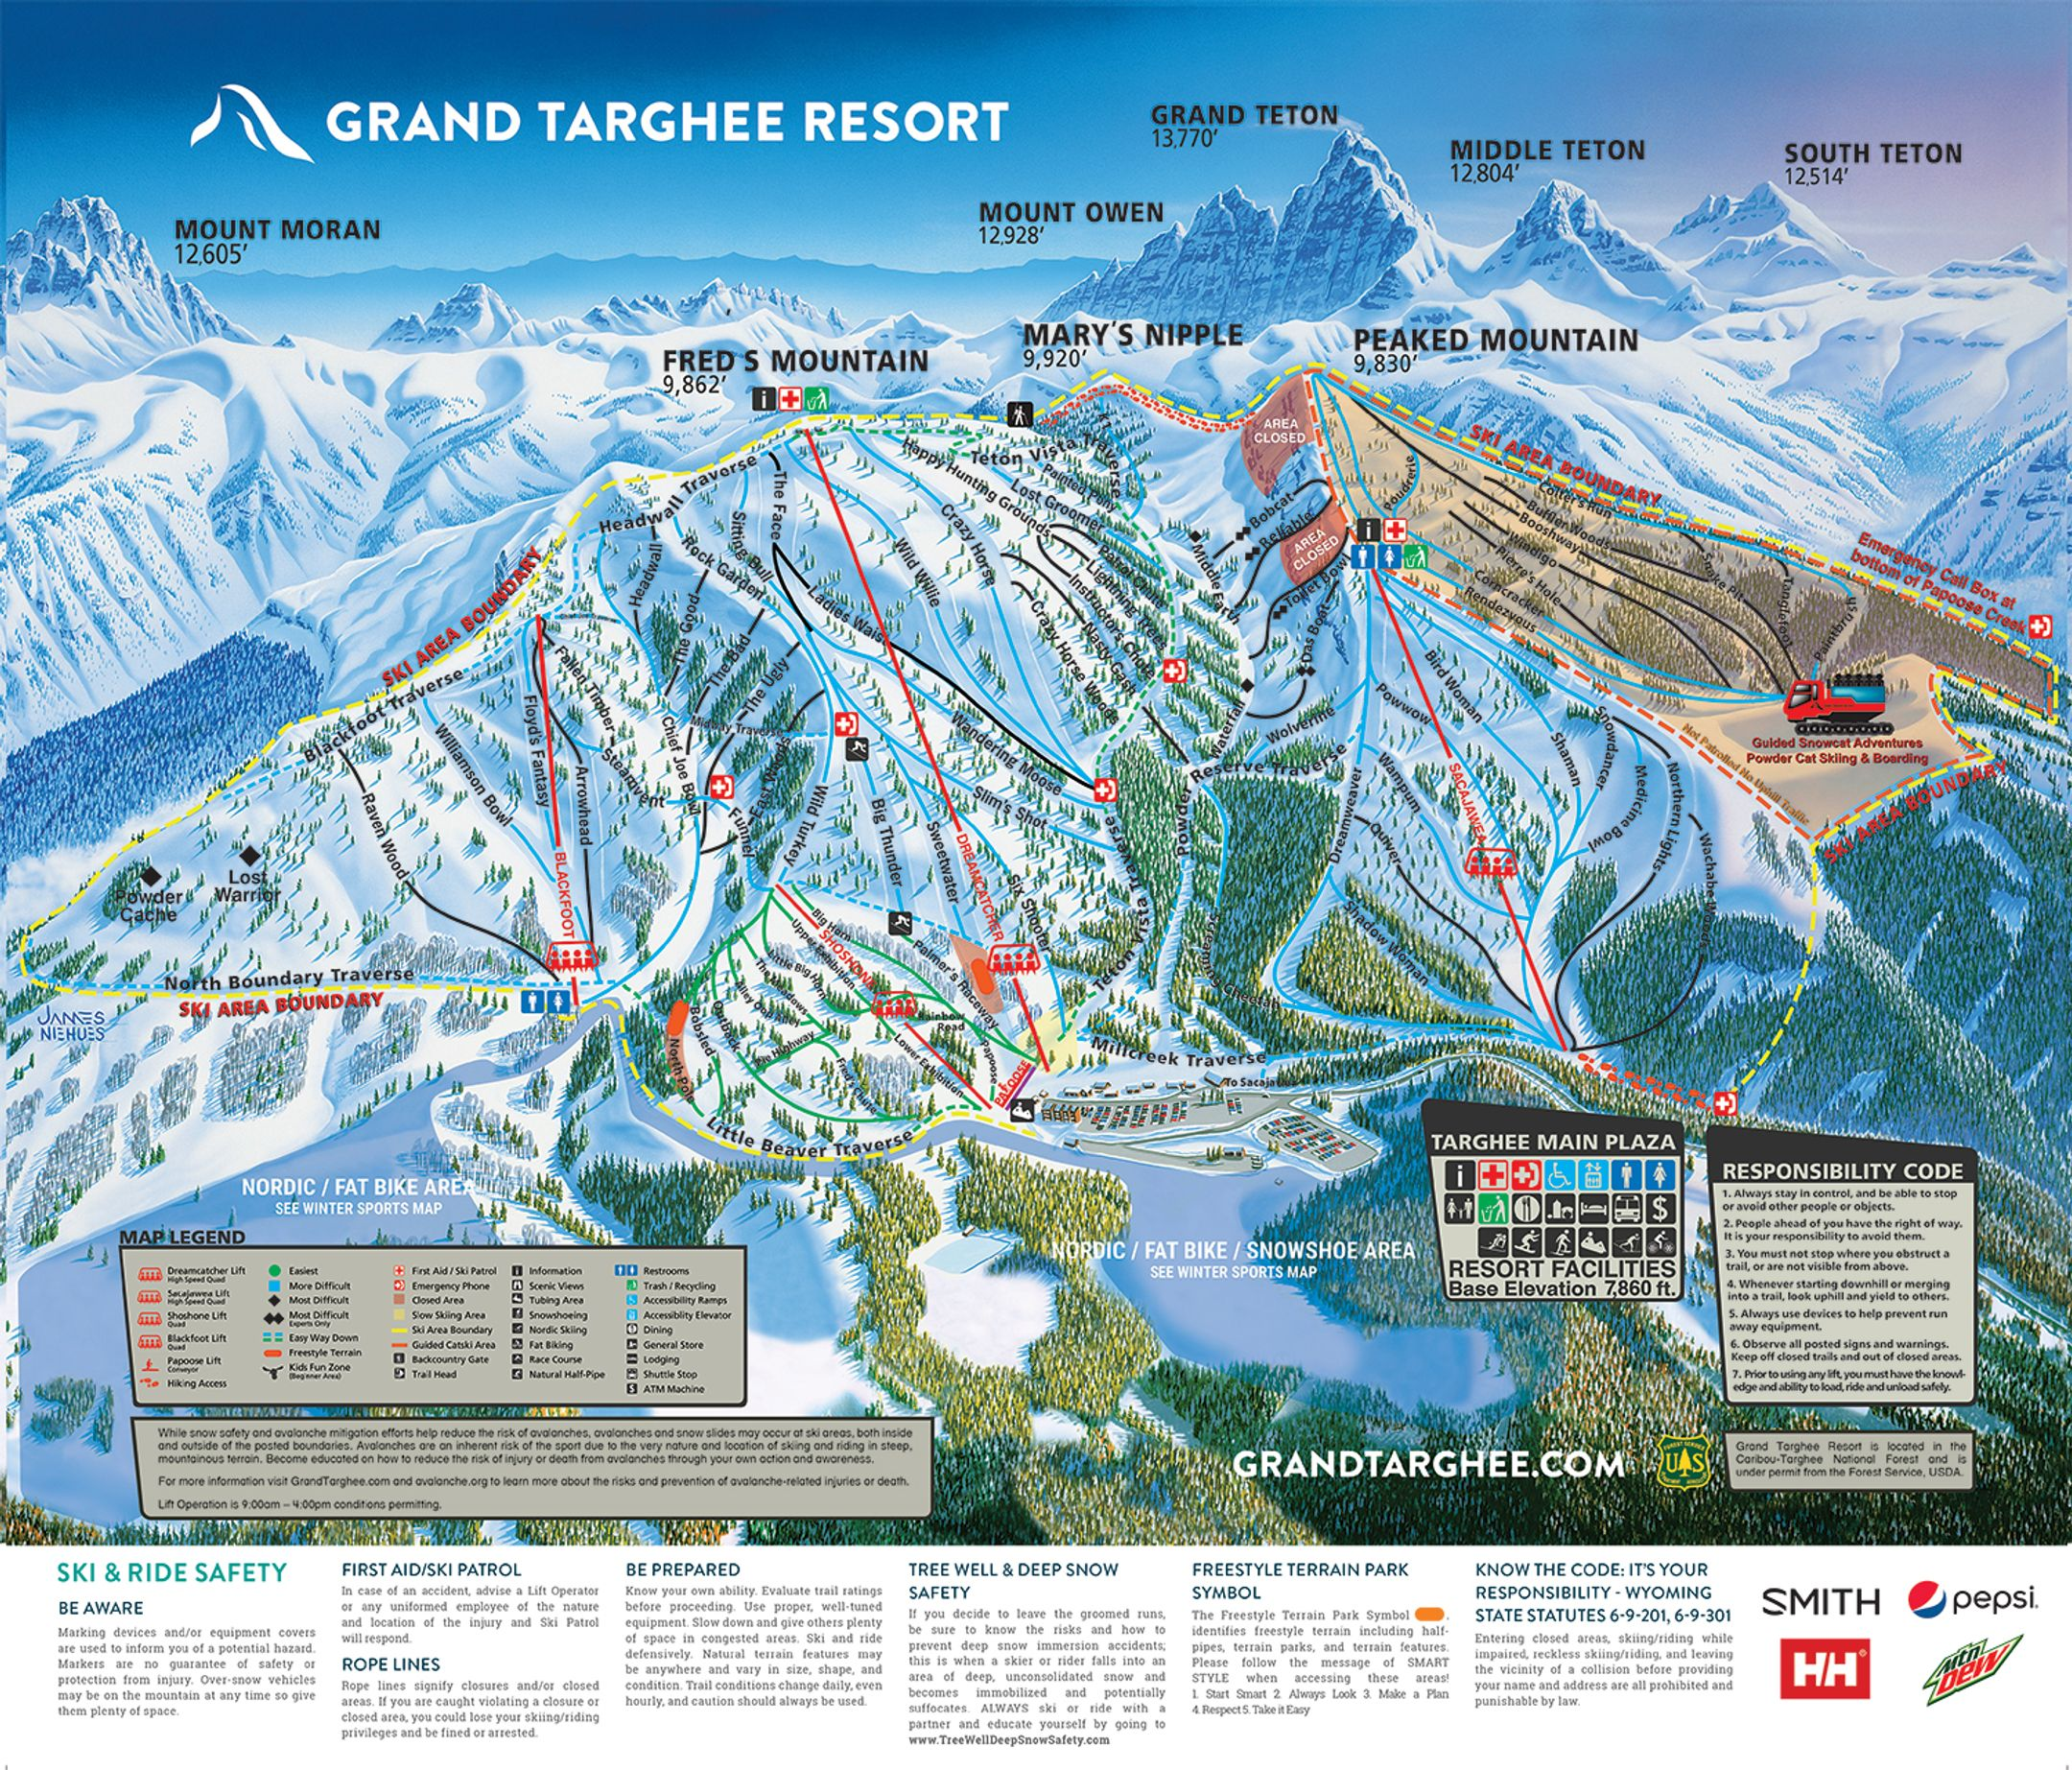 Grand Targhee ski-resort-trail-map United States ripatrip